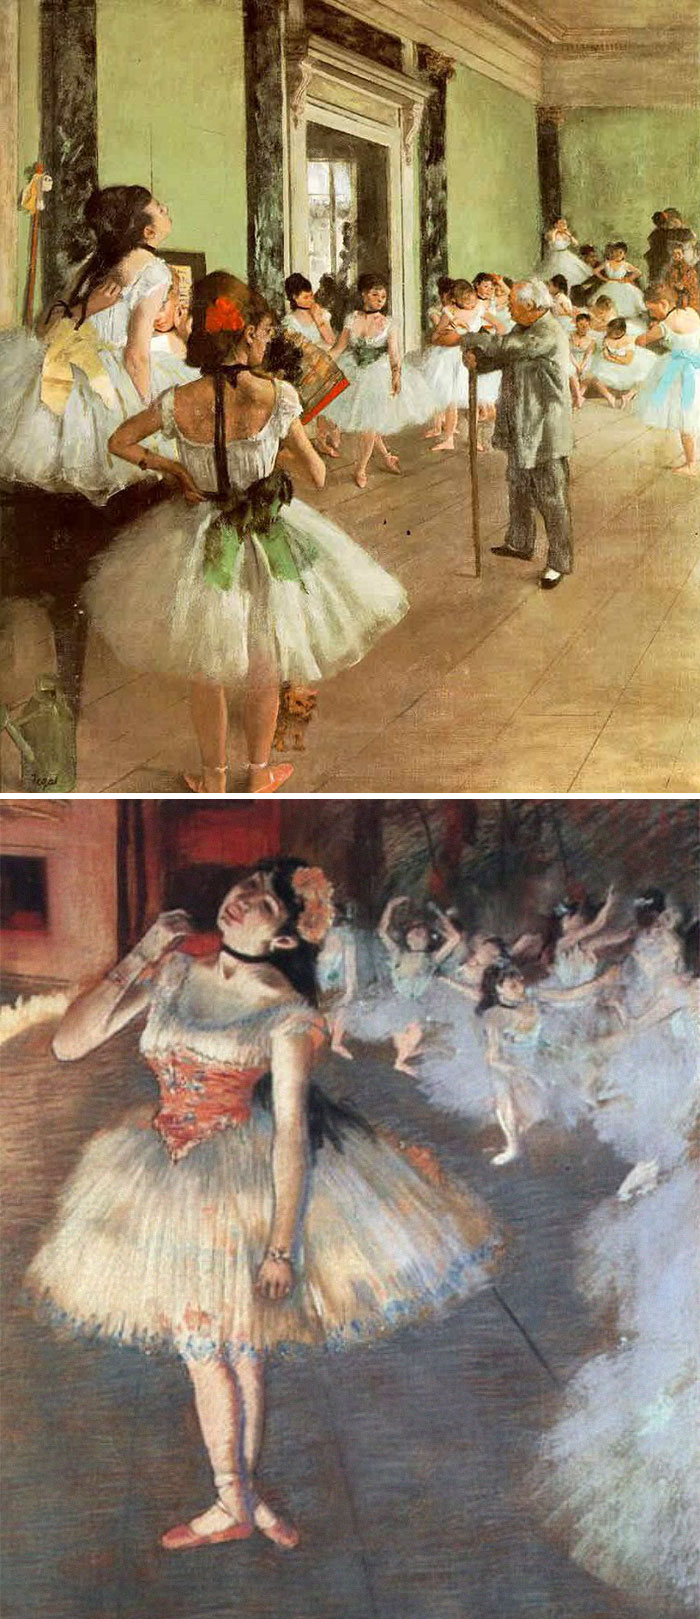 If You See A Ballerina, It's Degas